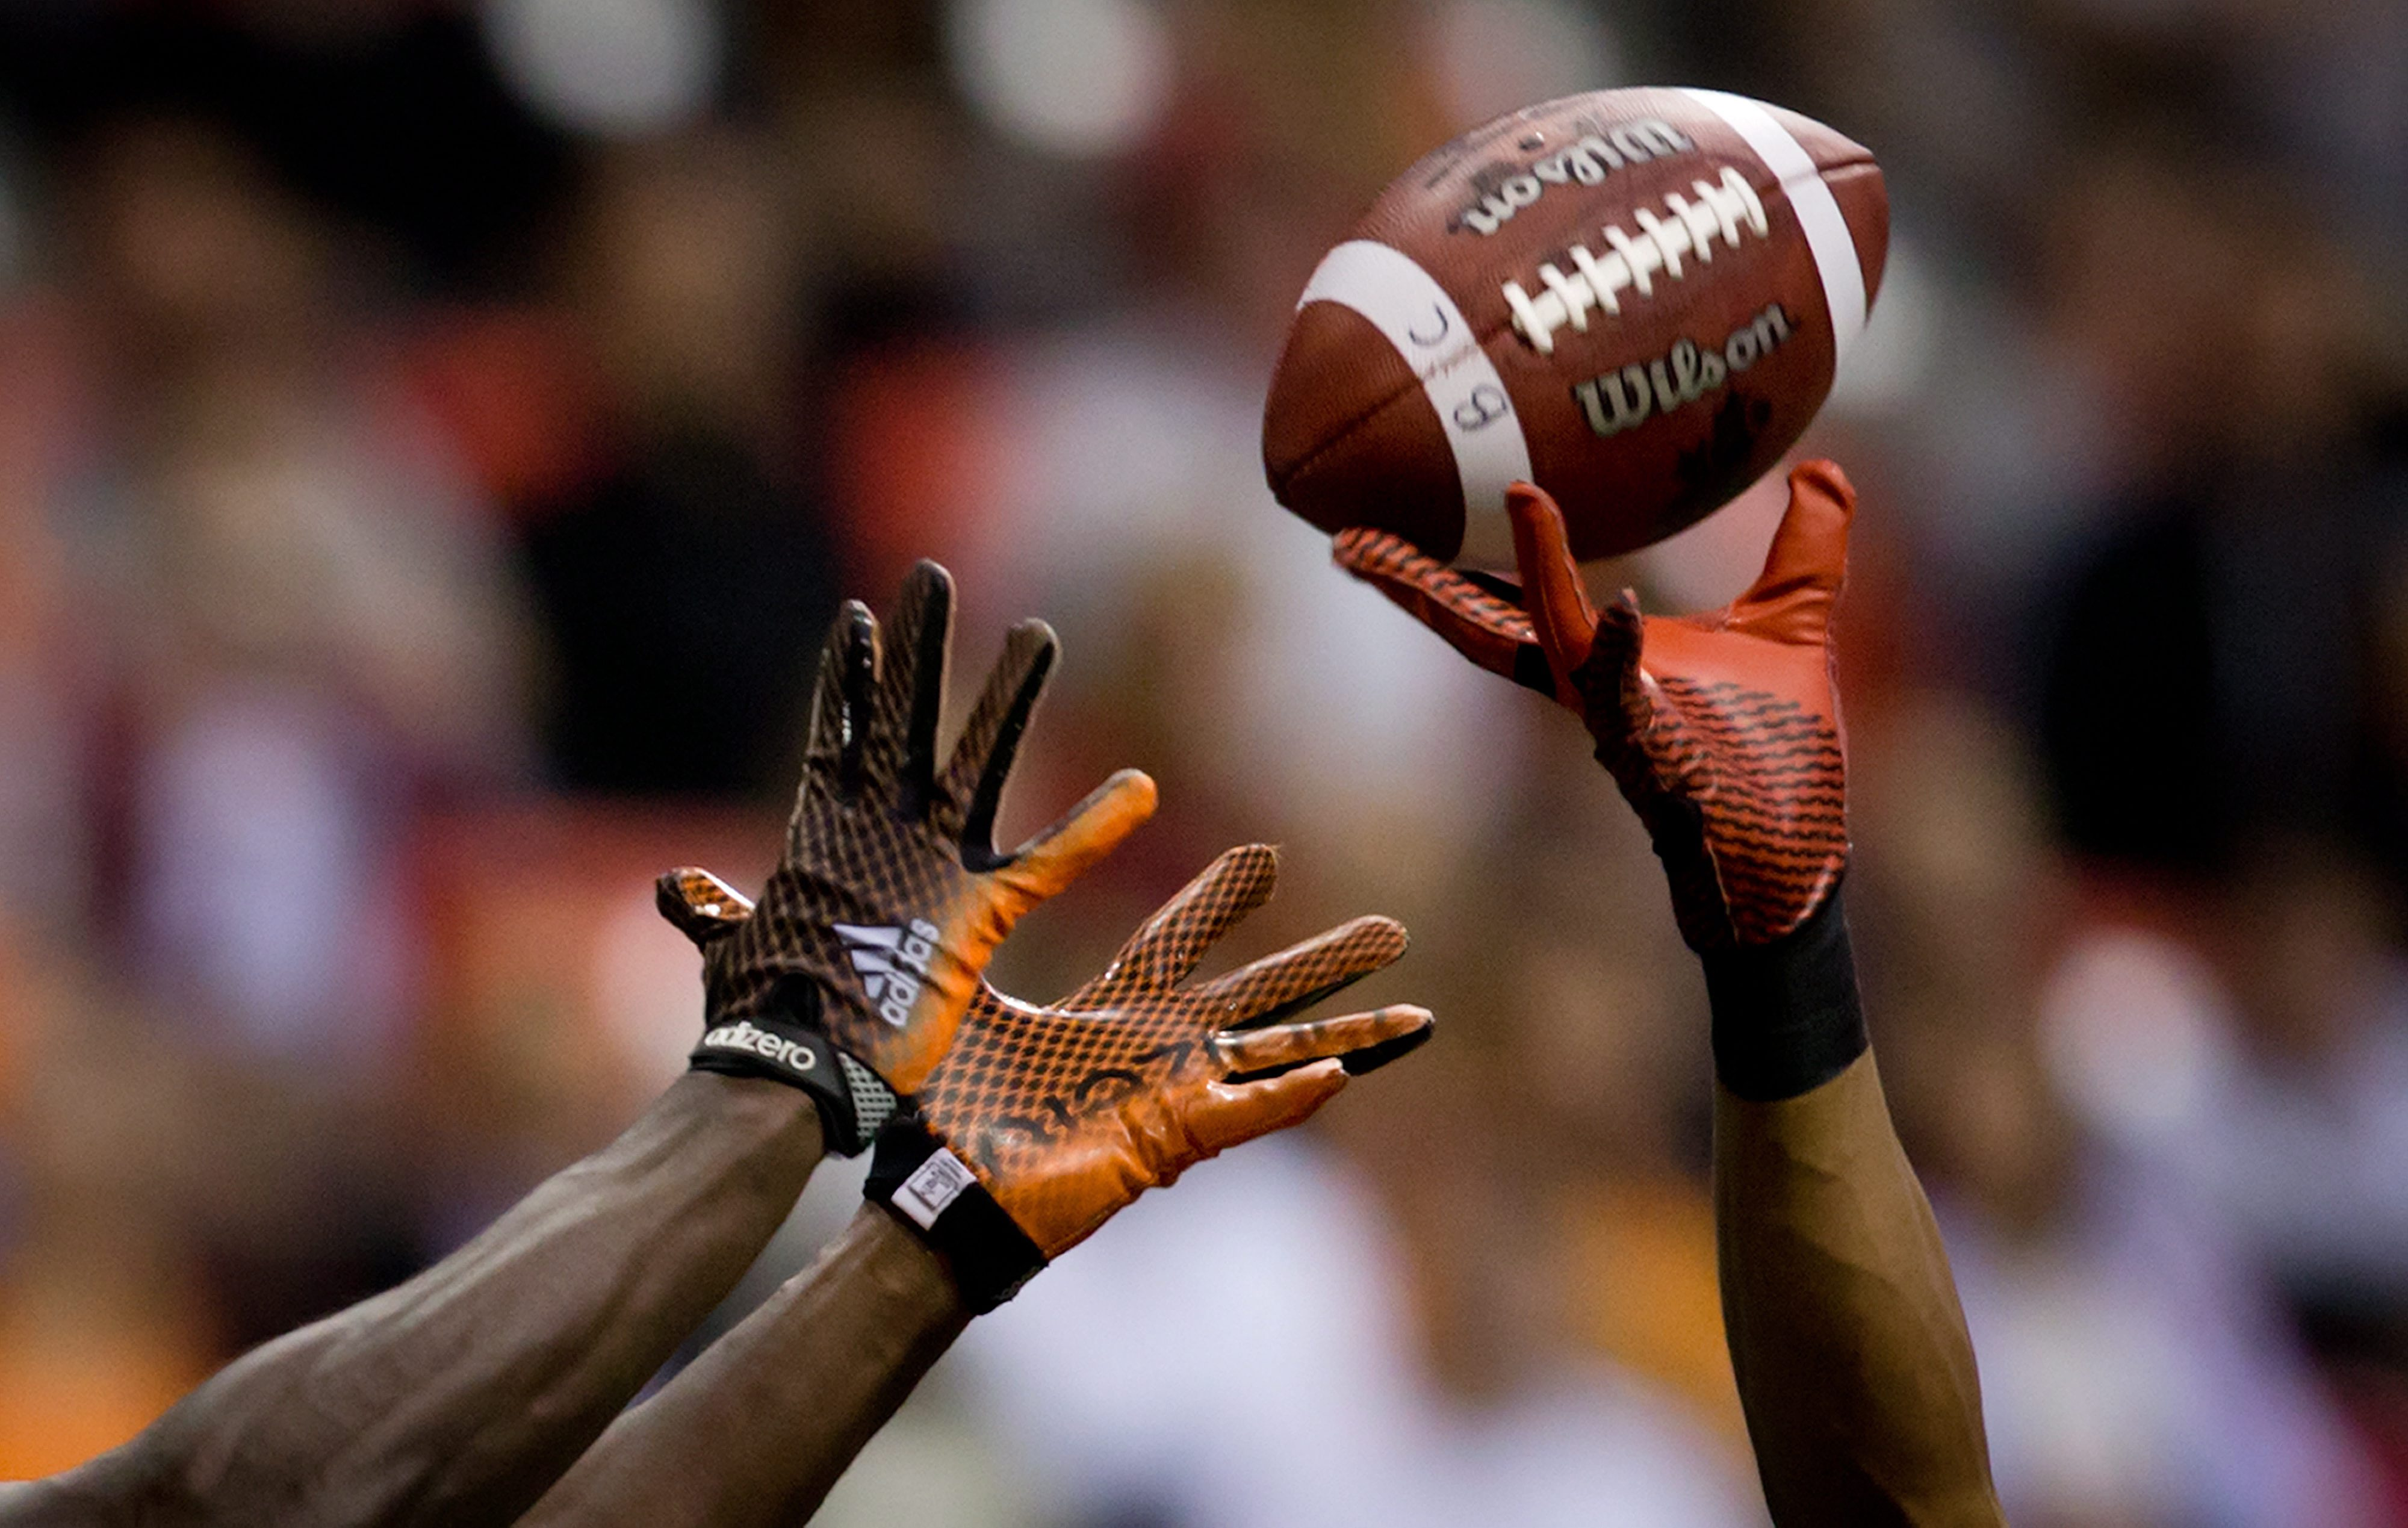 Calgary Stampeders' Ryan Steed, right, breaks up a pass intended for B.C. Lions' Stephen Adekolu in the end zone during the second half of a preseason Canadian Football League game in Vancouver, British Columbia, on Friday, June 20, 2014